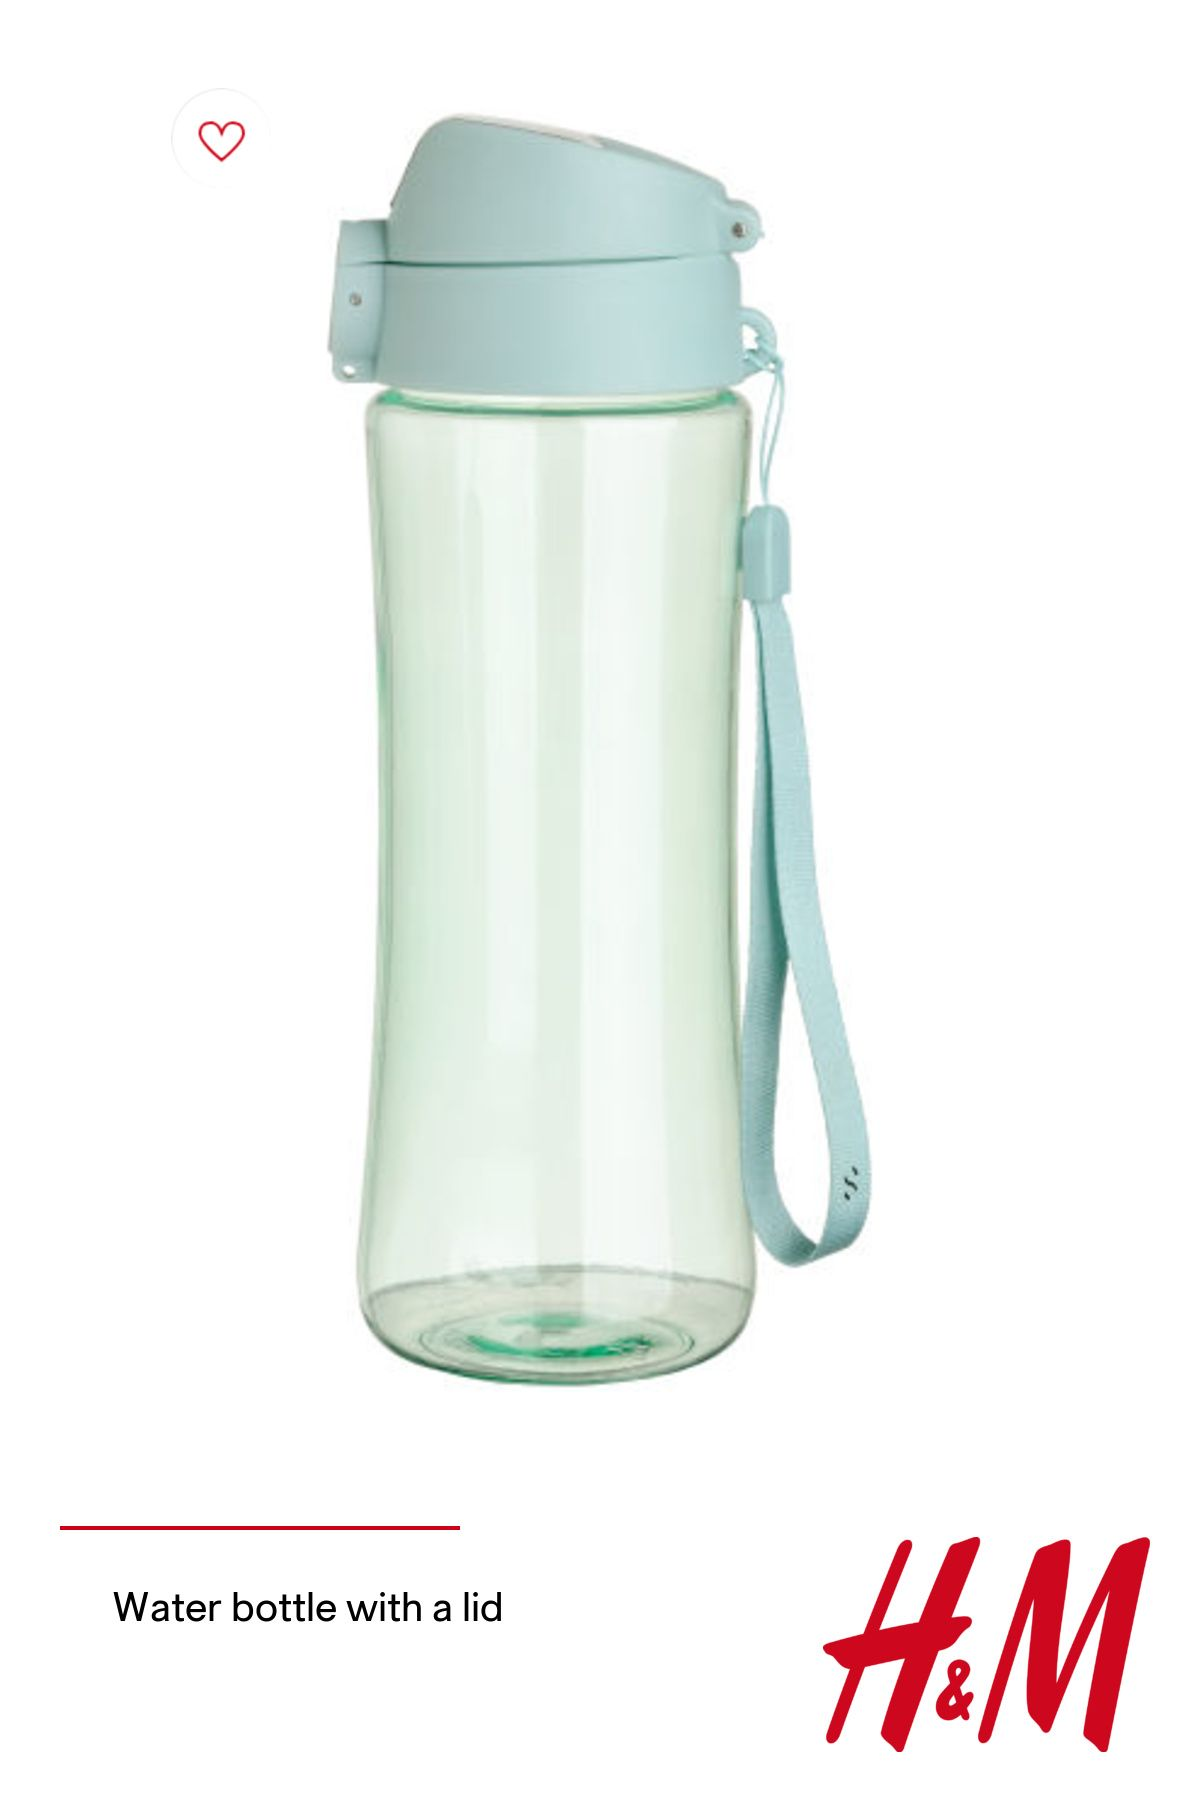 Water bottle with a lid